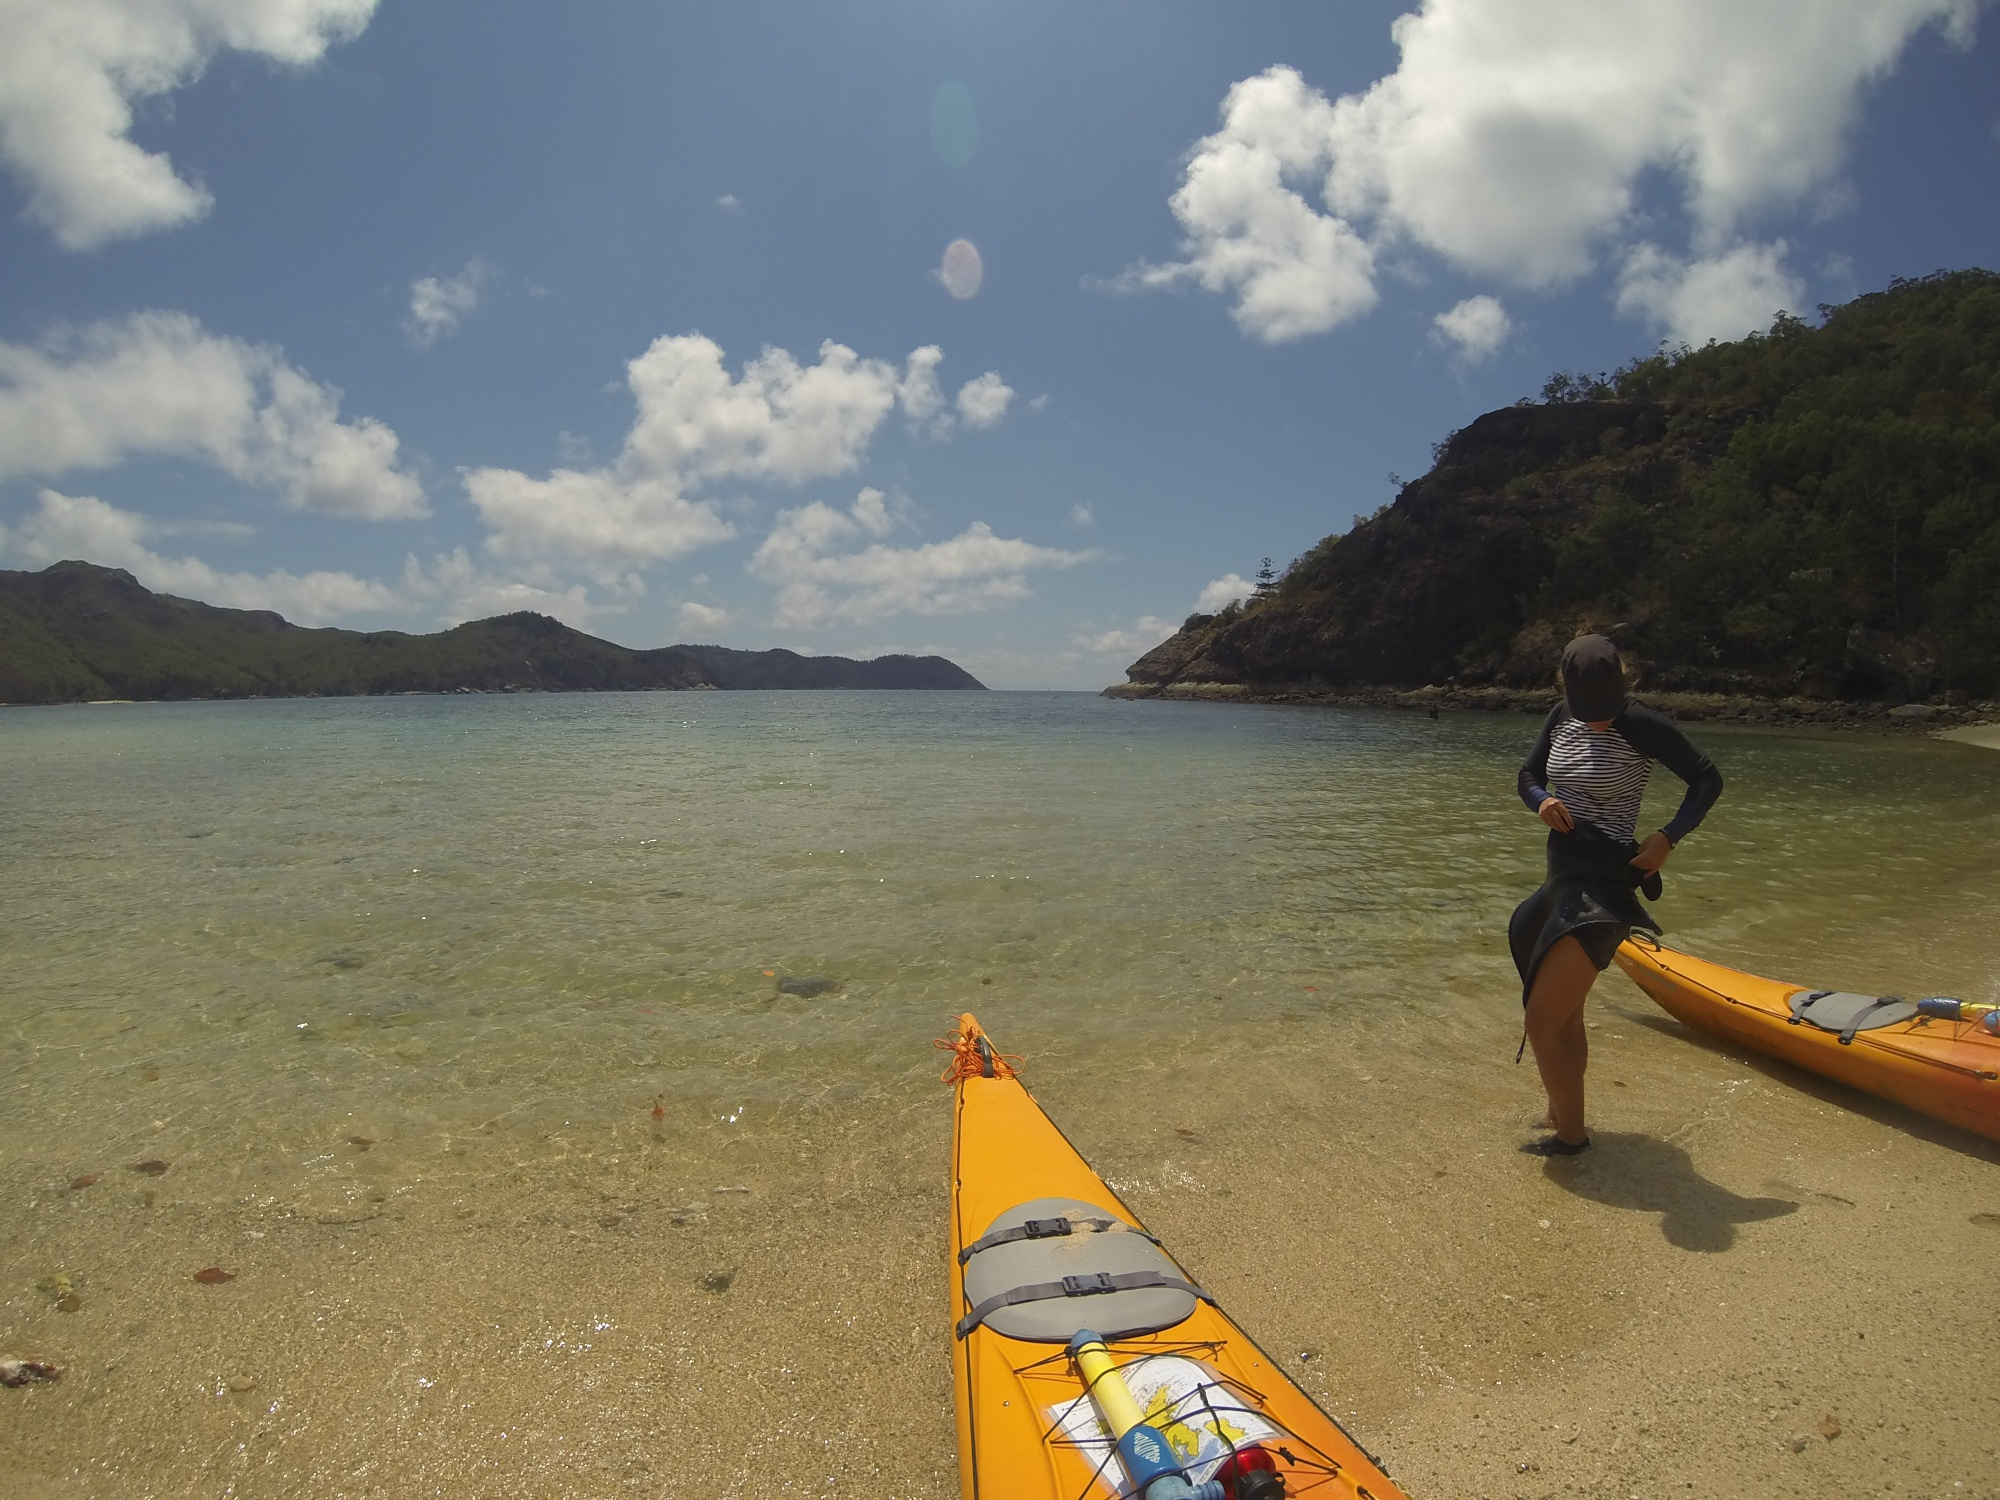 getting ready to launch from crayfish beach